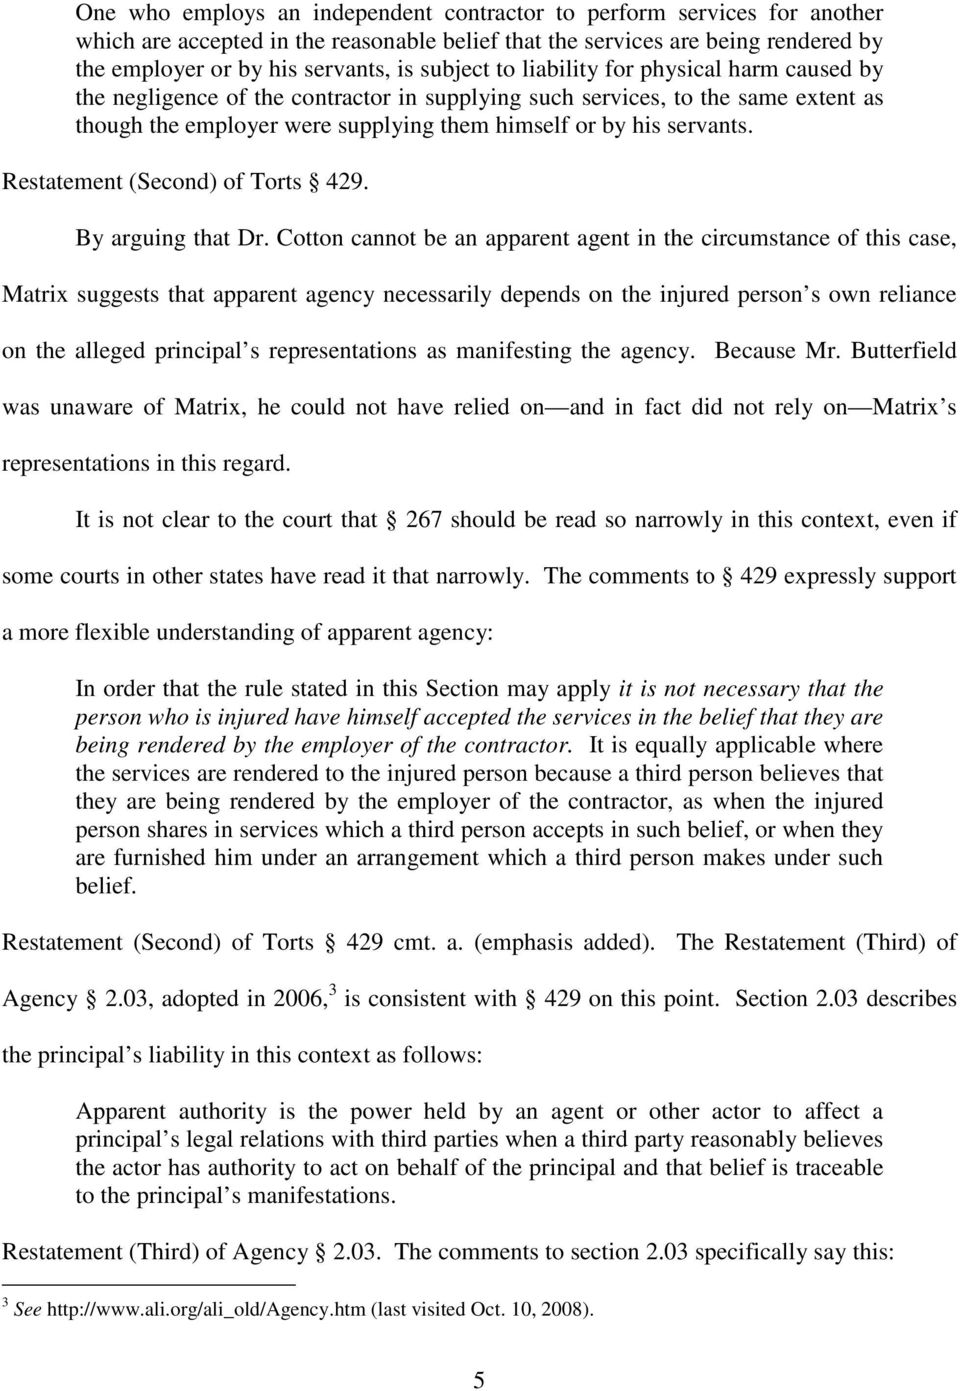 Restatement (Second) of Torts 429. By arguing that Dr.